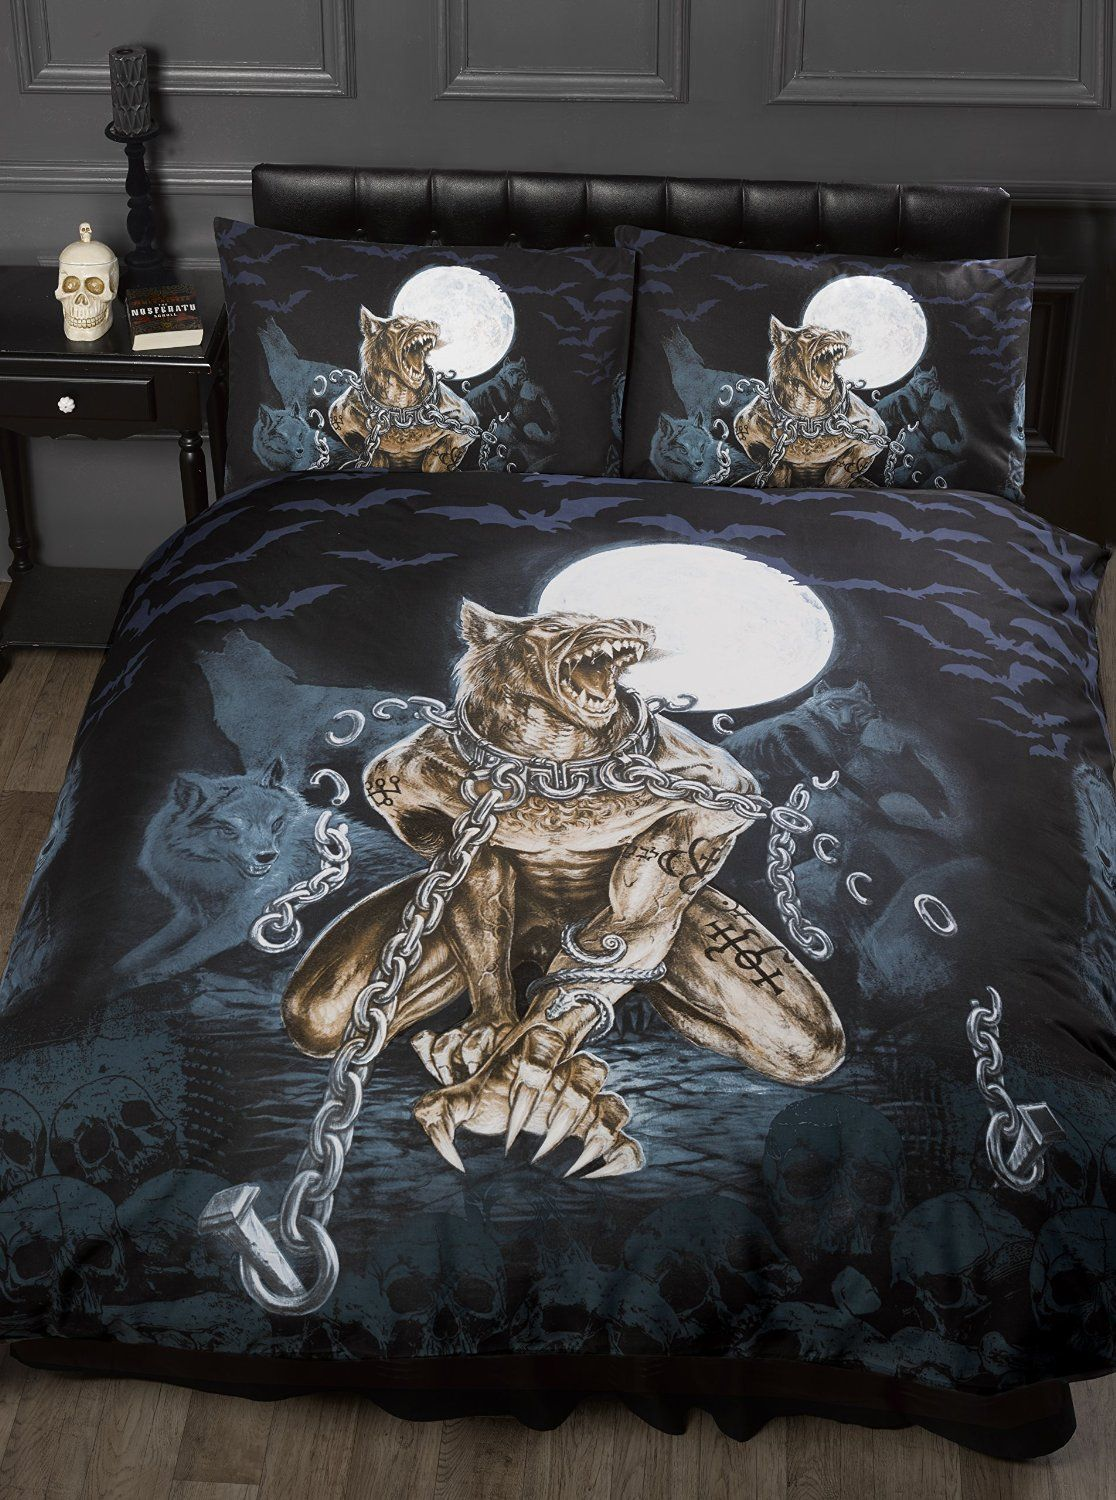 GOTHIC BEDDING Duvet & Pillow Cover